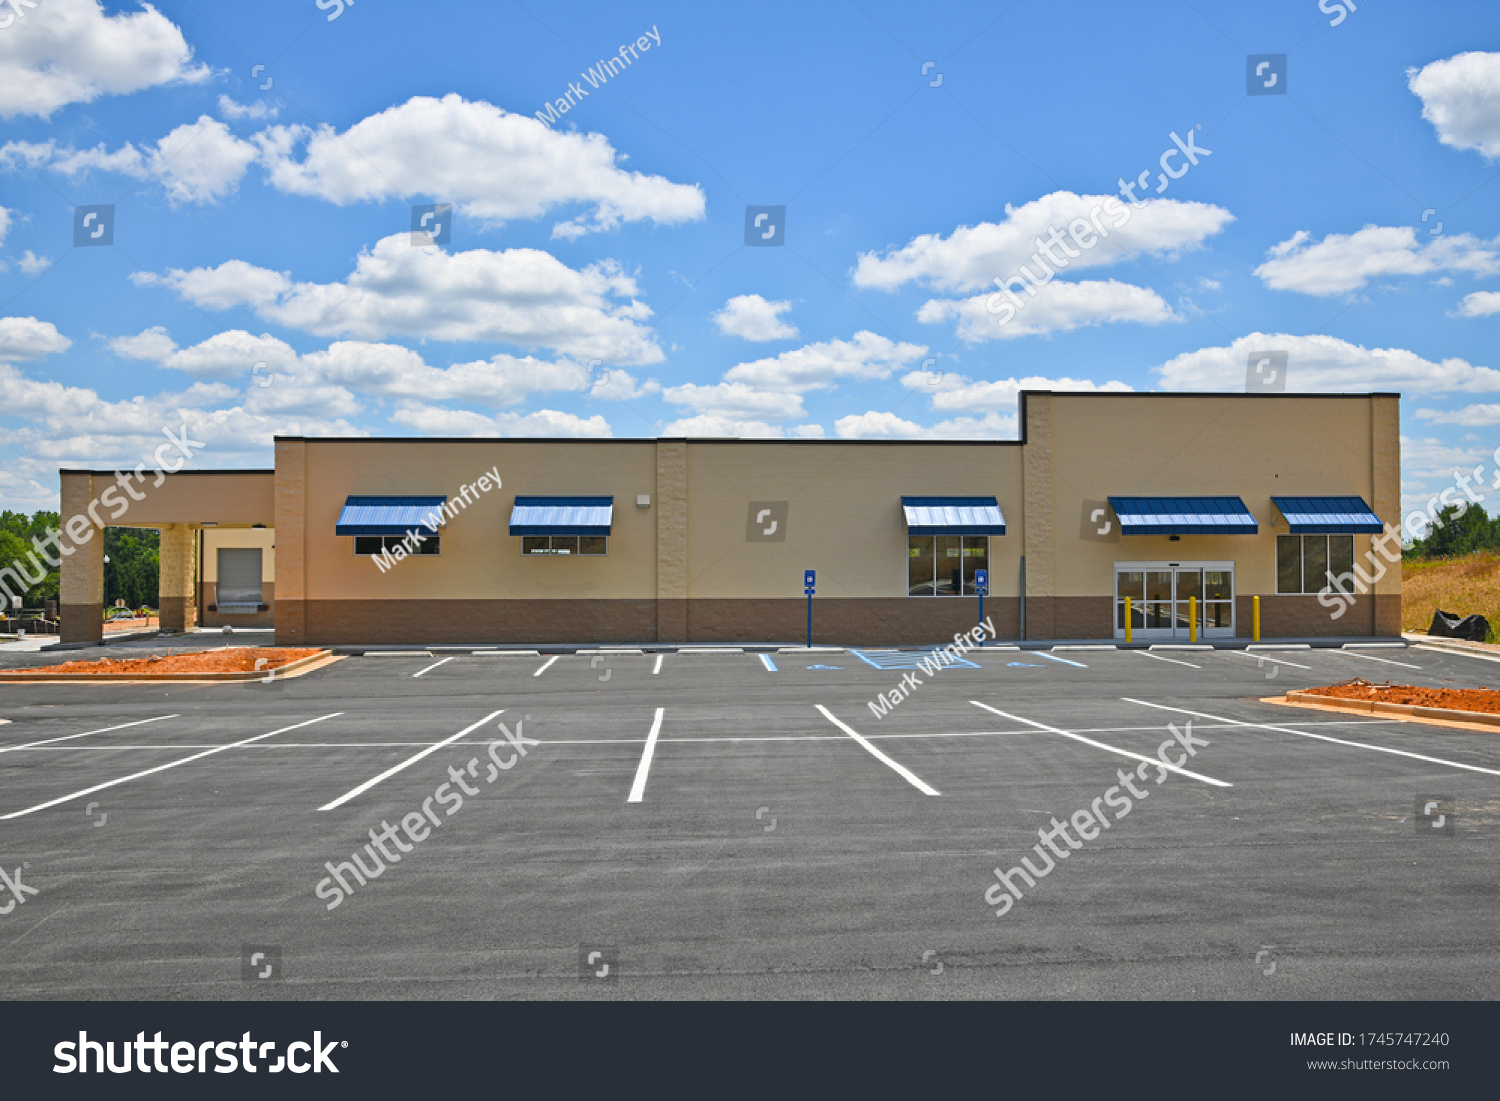 stock-photo-new-commercial-building-with